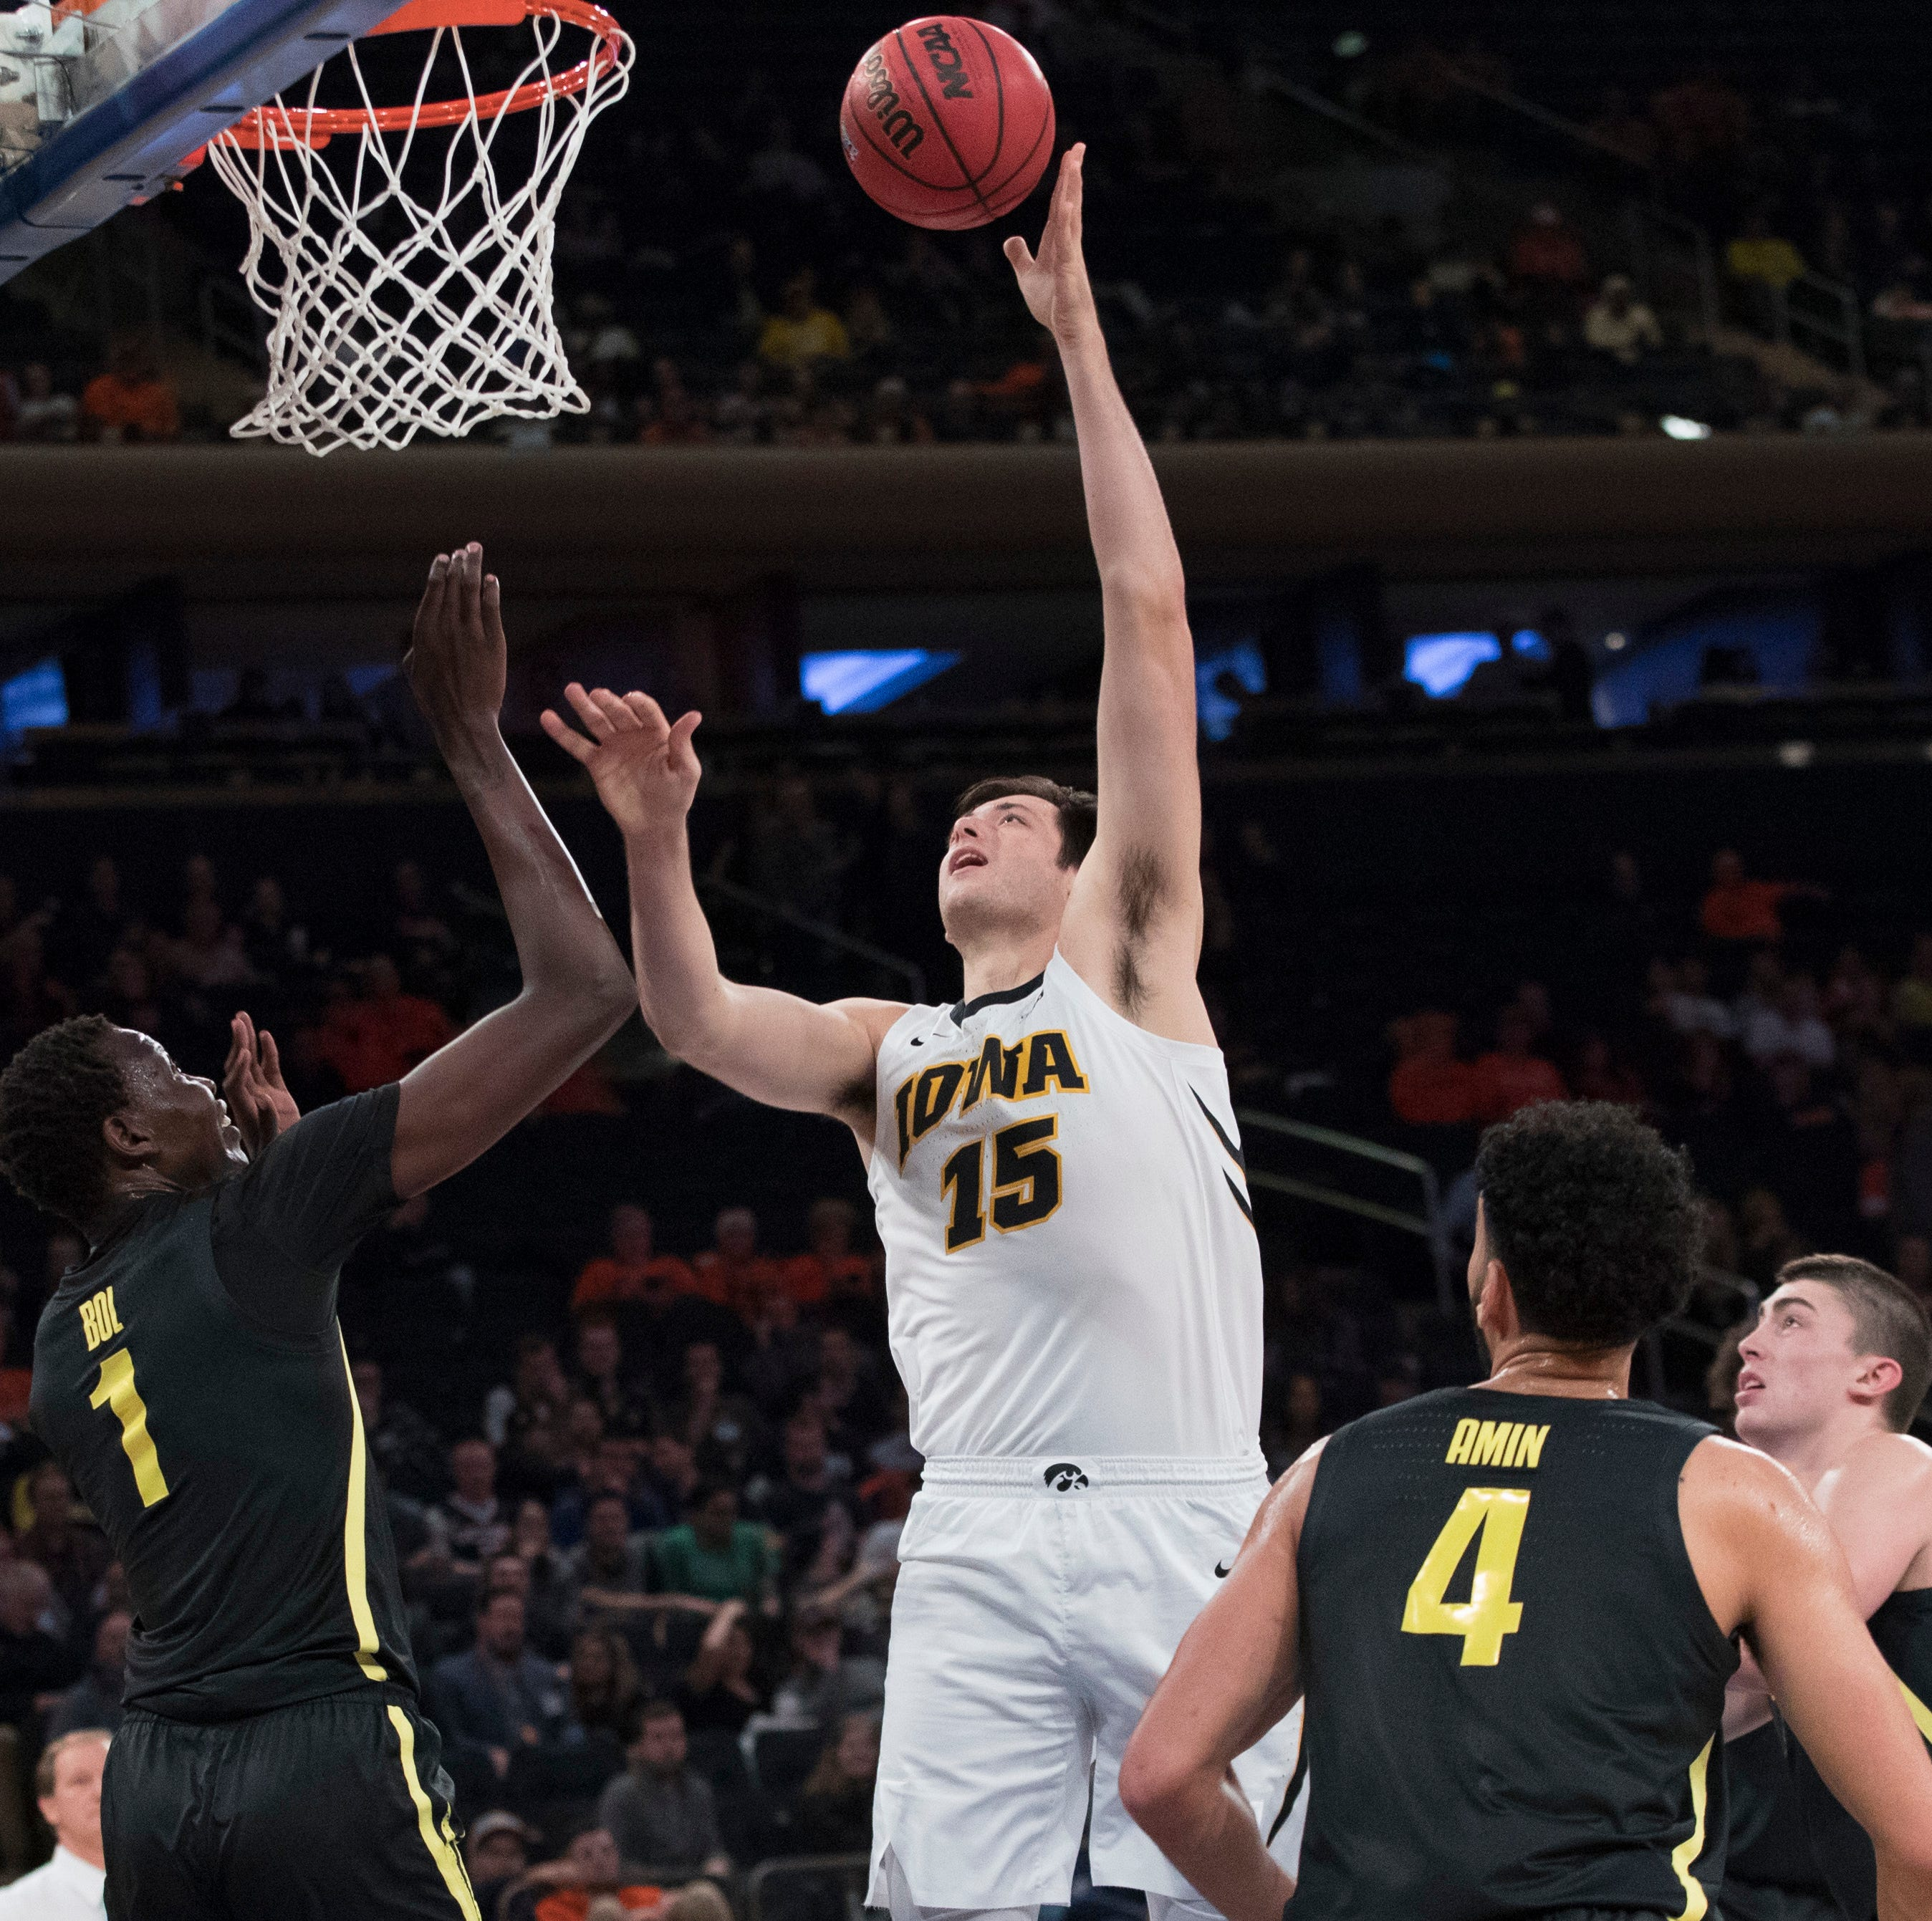 Iowa knocks off No. 13 Oregon in tenacious effort at Madison Square Garden